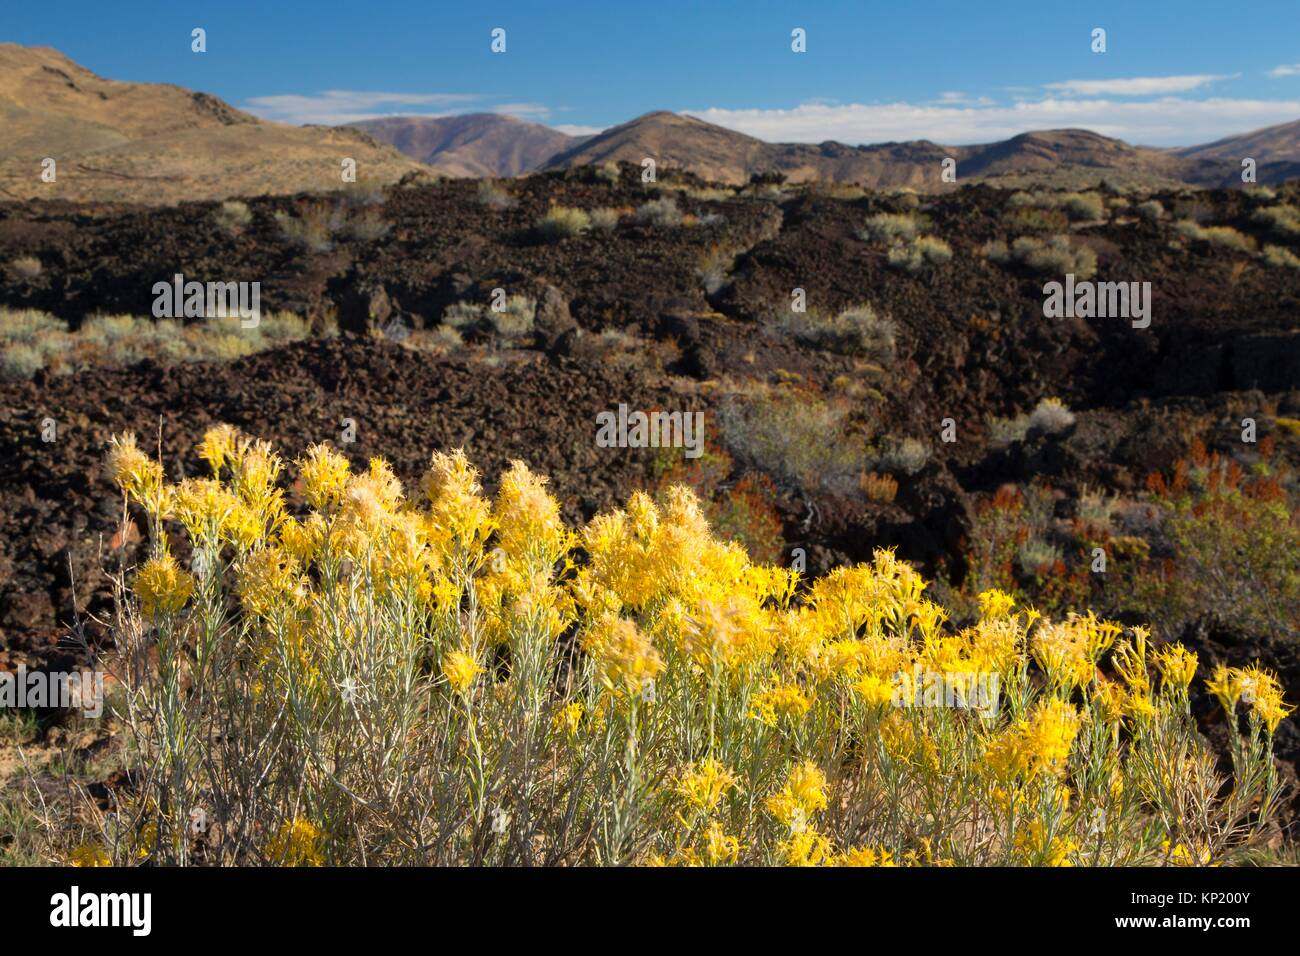 Rabbitbrush on lava flow, Craters of the Moon National Preserve, Peaks to Craters Scenic Byway, Idaho. - Stock Image